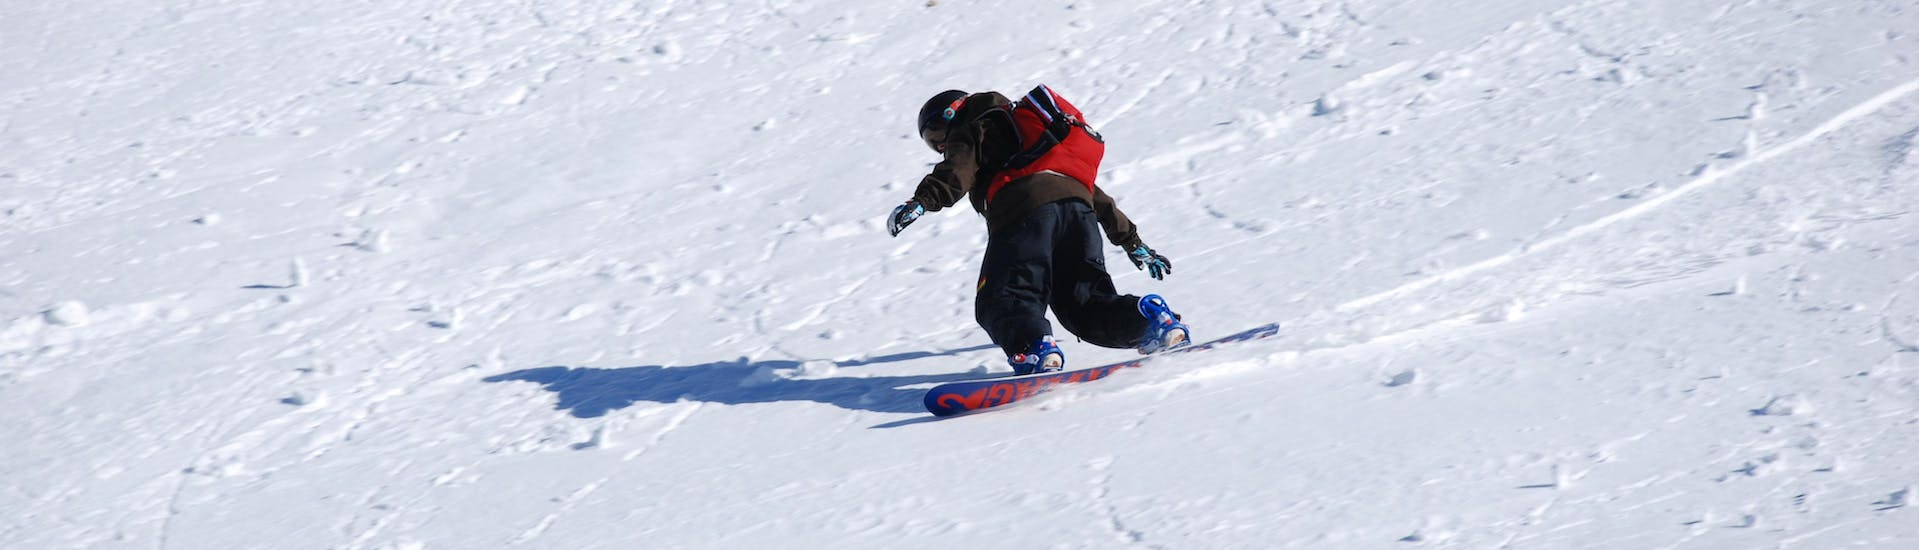 """Snowboard Instructor Private """"Super 3"""" - All Levels & Ages avec Skischule Gosau - Hero image"""